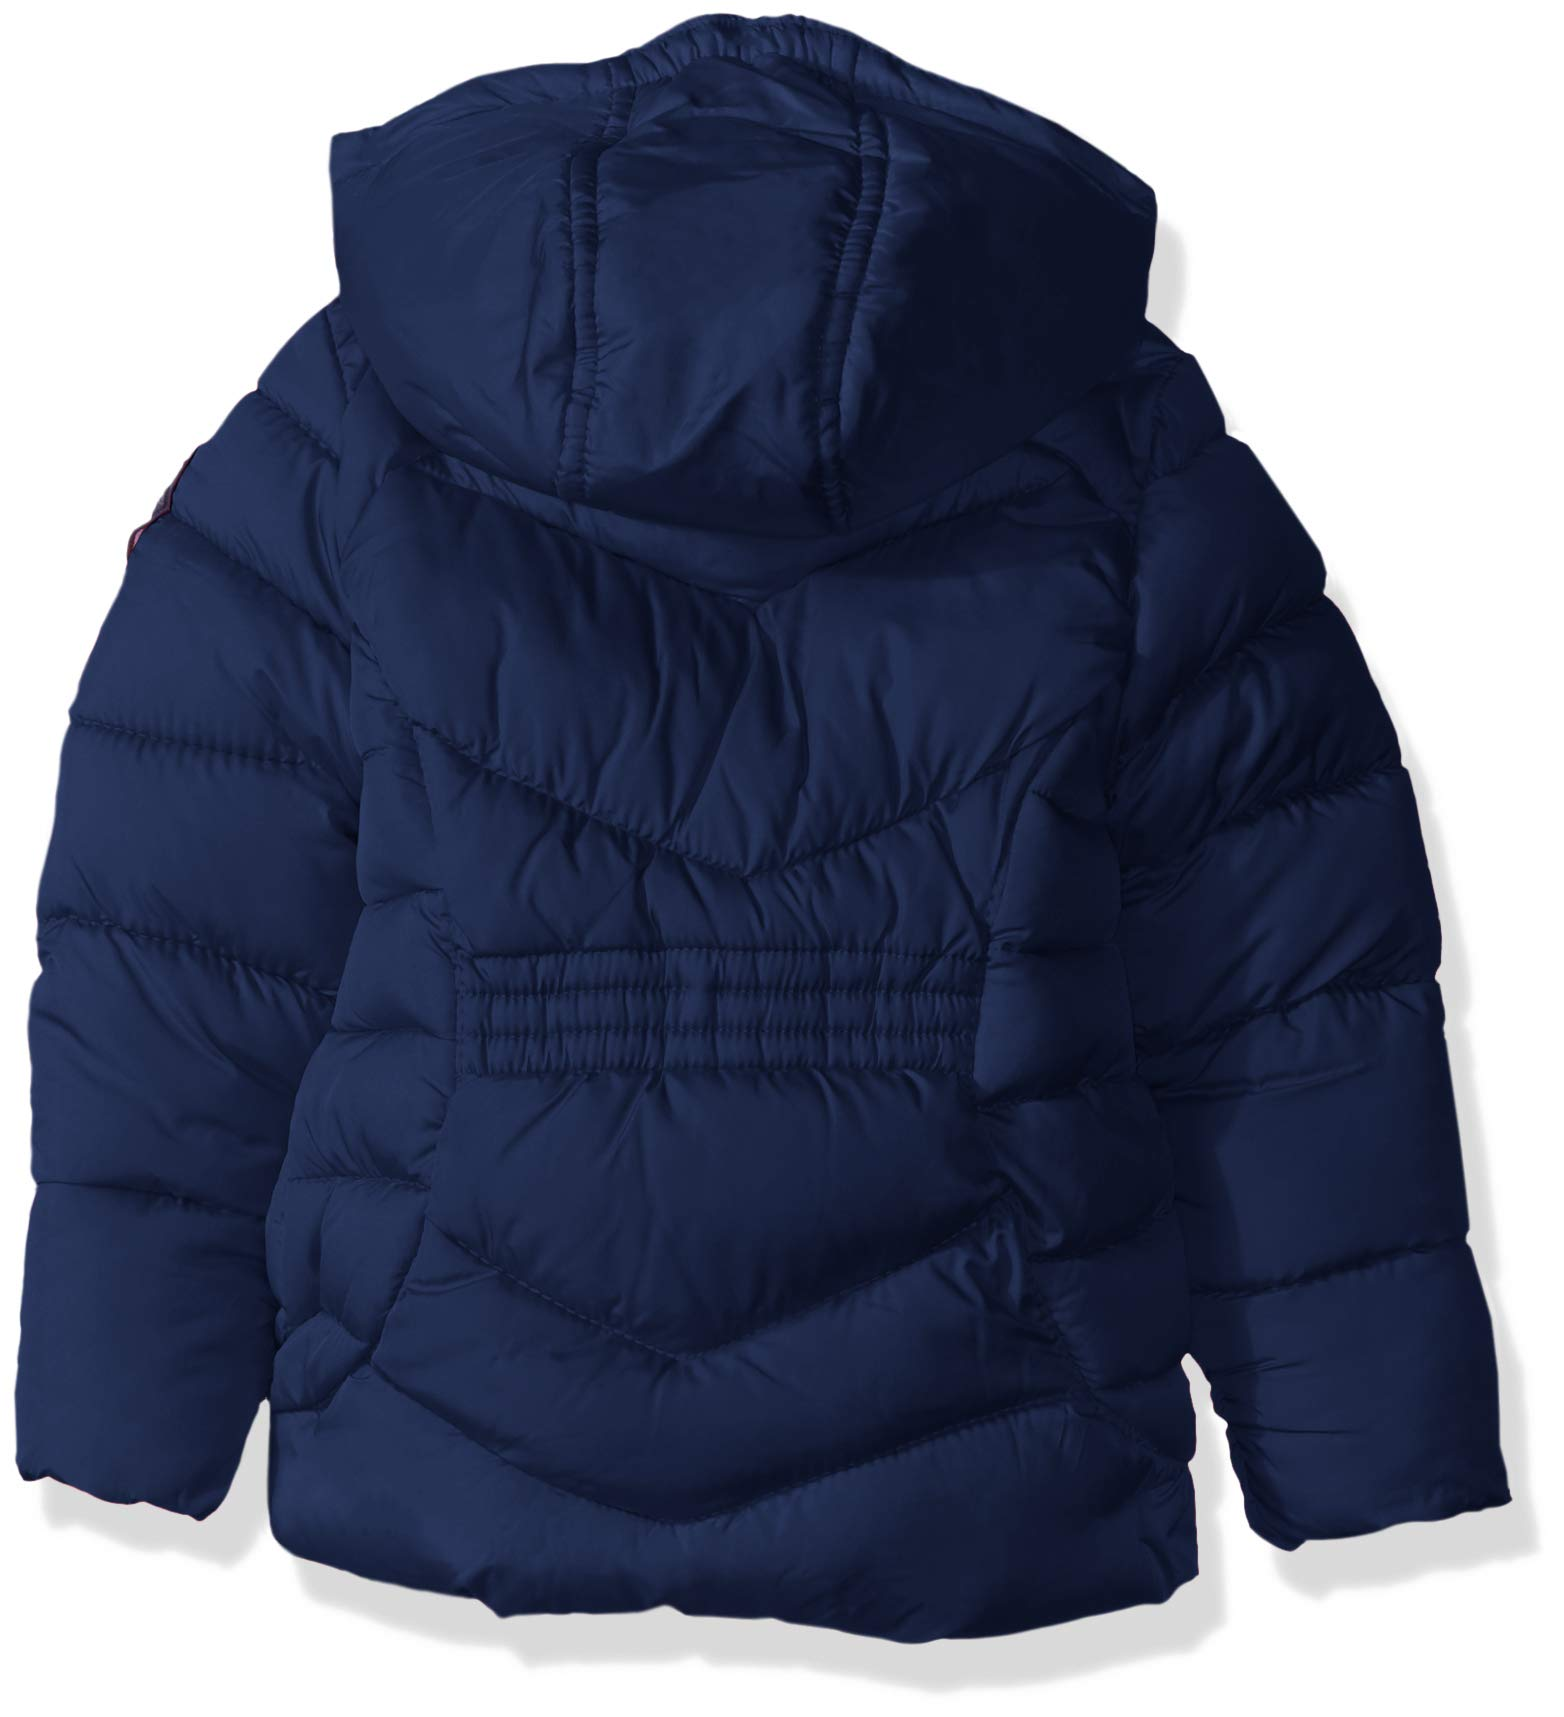 US Polo Association Girls' Little Hooded Bubble Jacket with Piping Detail, Navy, 6X by U.S. Polo Assn. (Image #2)